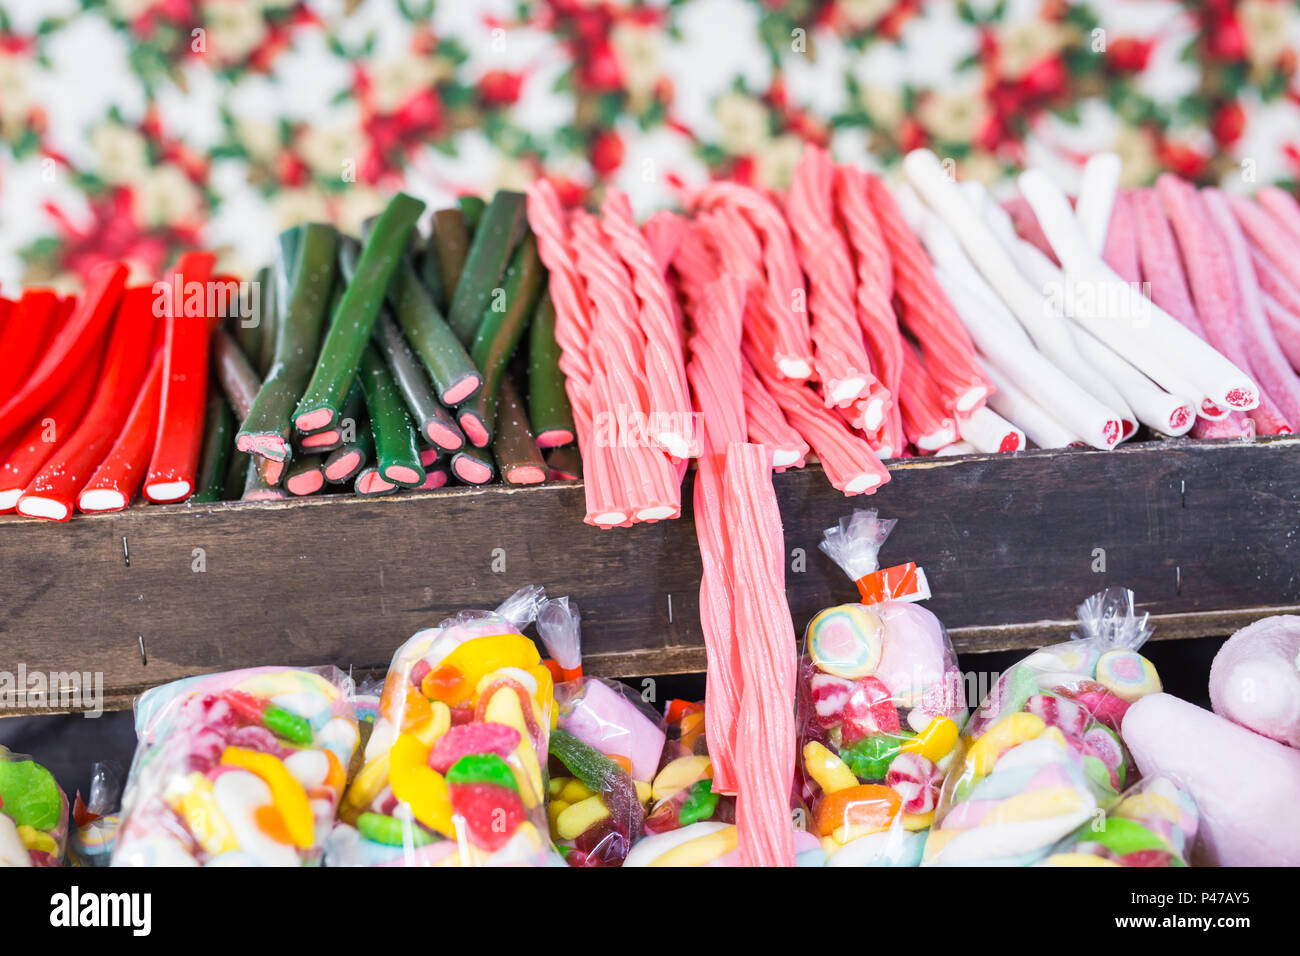 A perfect choice of wonderful sweets of any shape and colour - Stock Image